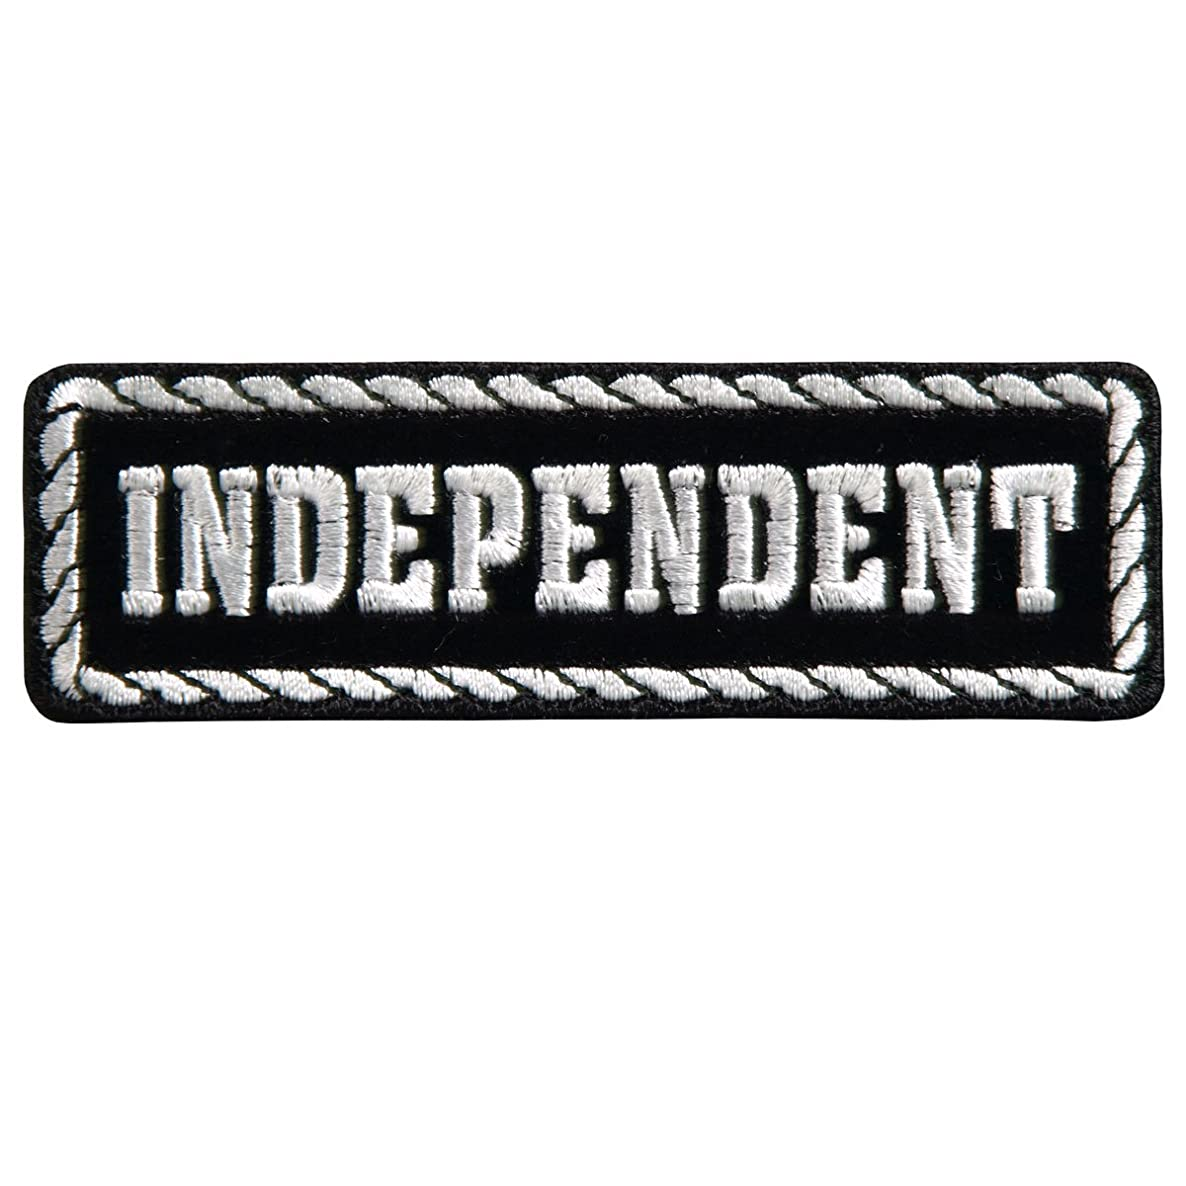 Hot Leathers, OFFICER INDEPENDENT, High Thread Embroidered Iron-On / Saw-On Rayon PATCH - 4